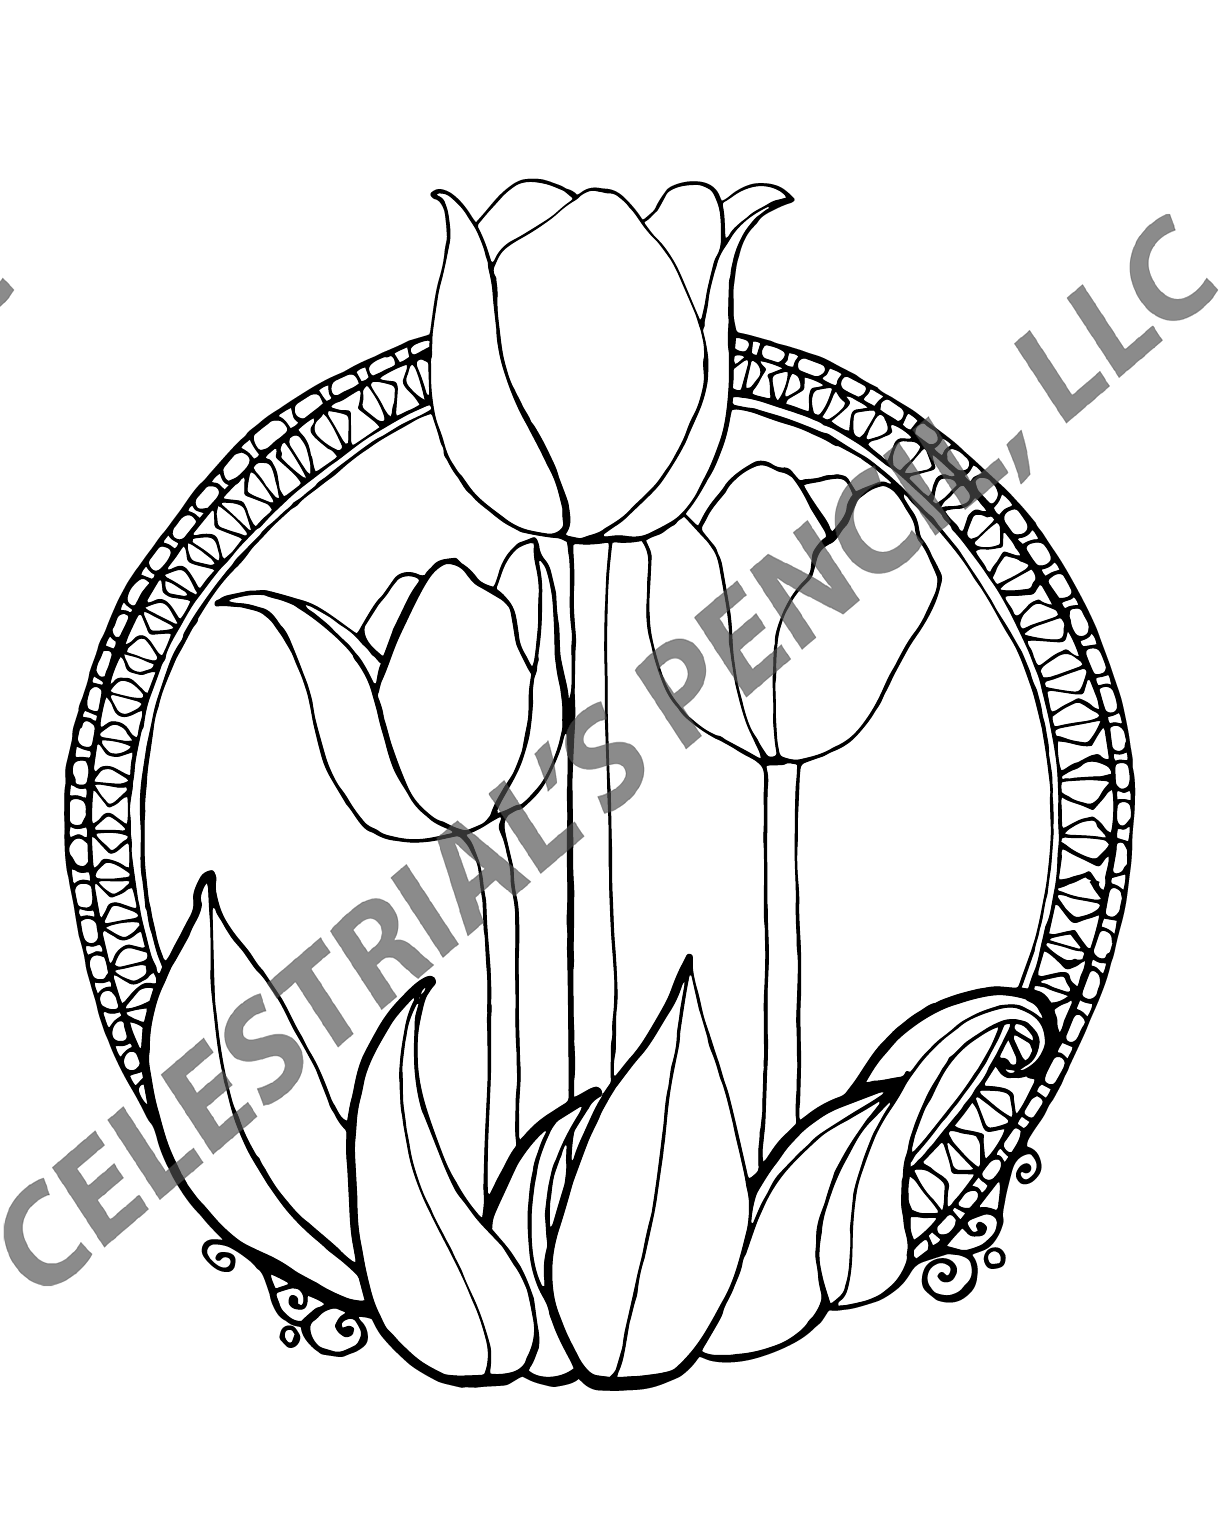 Coloring summer activities - Page From Spring Into Summer Coloring Activity Book Tulips